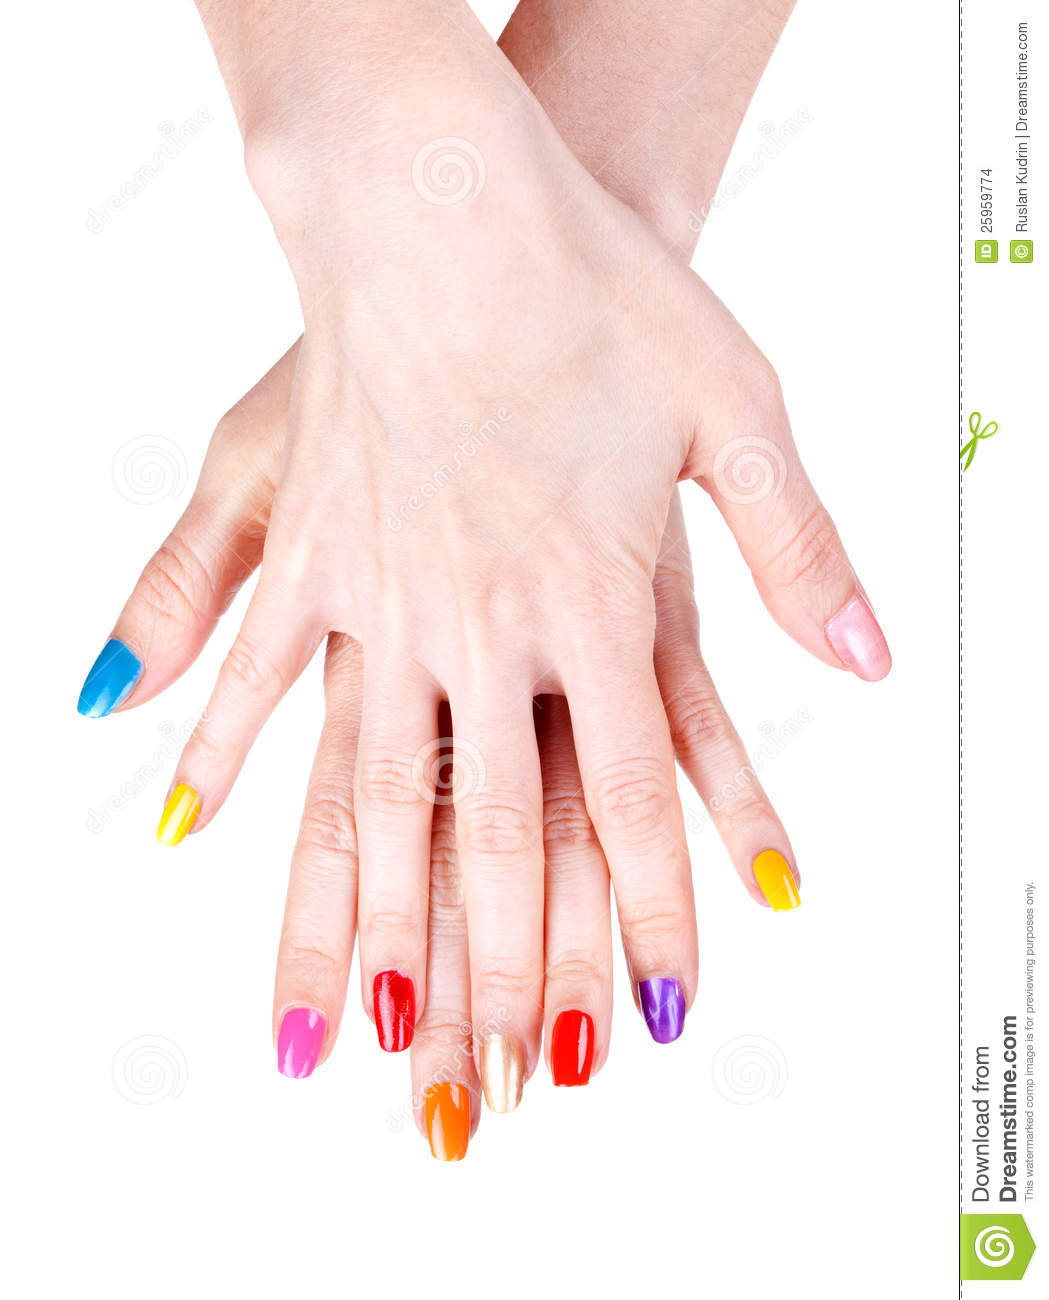 Nail Polish Colors For Younger Looking Hands: Women's Hands With A Colored Nail Polish Stock Images